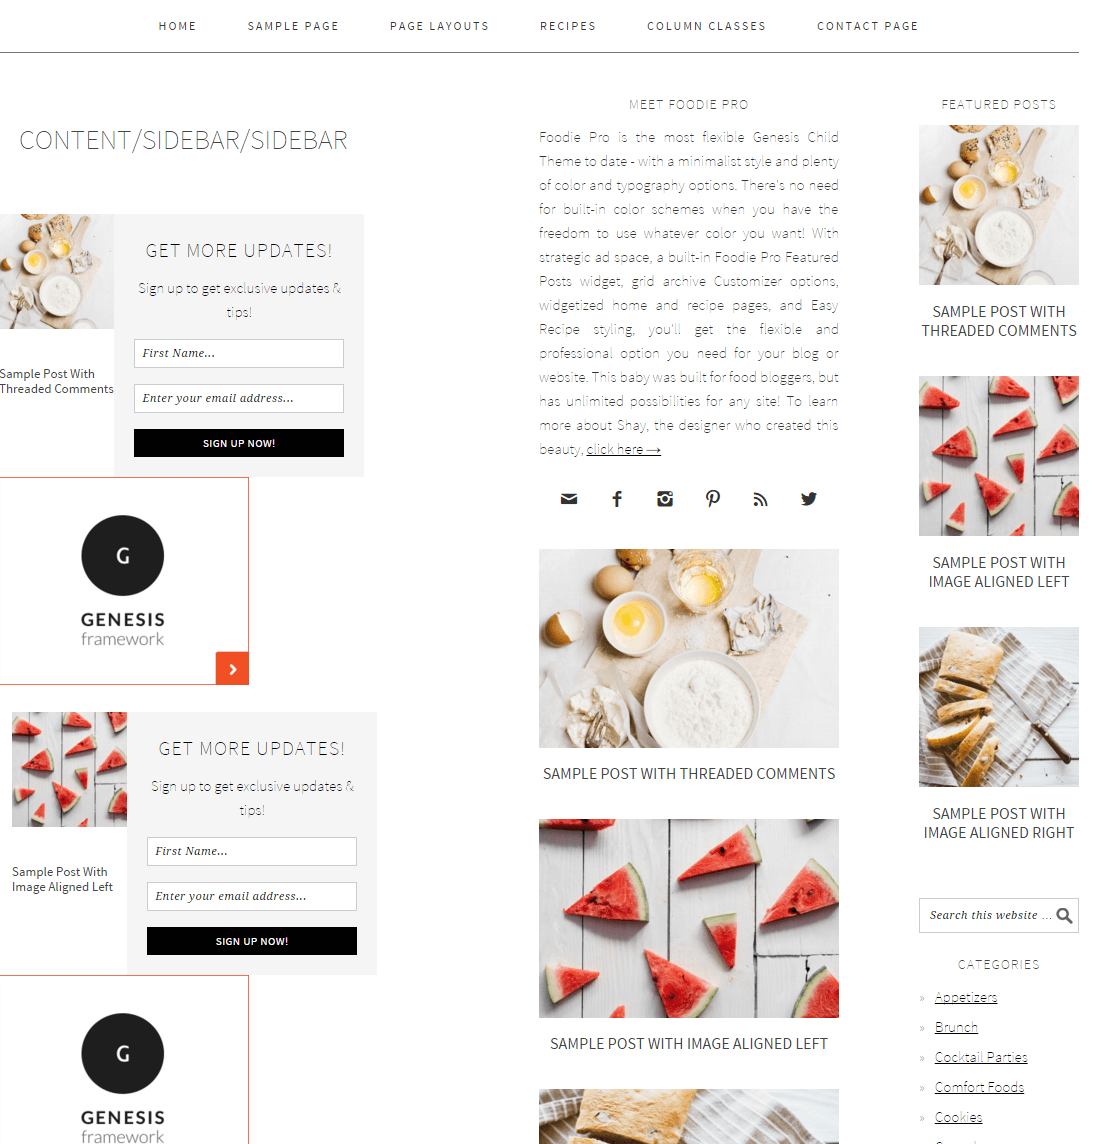 Foodie Pro- sidebar-content-sidebar page layout of this theme